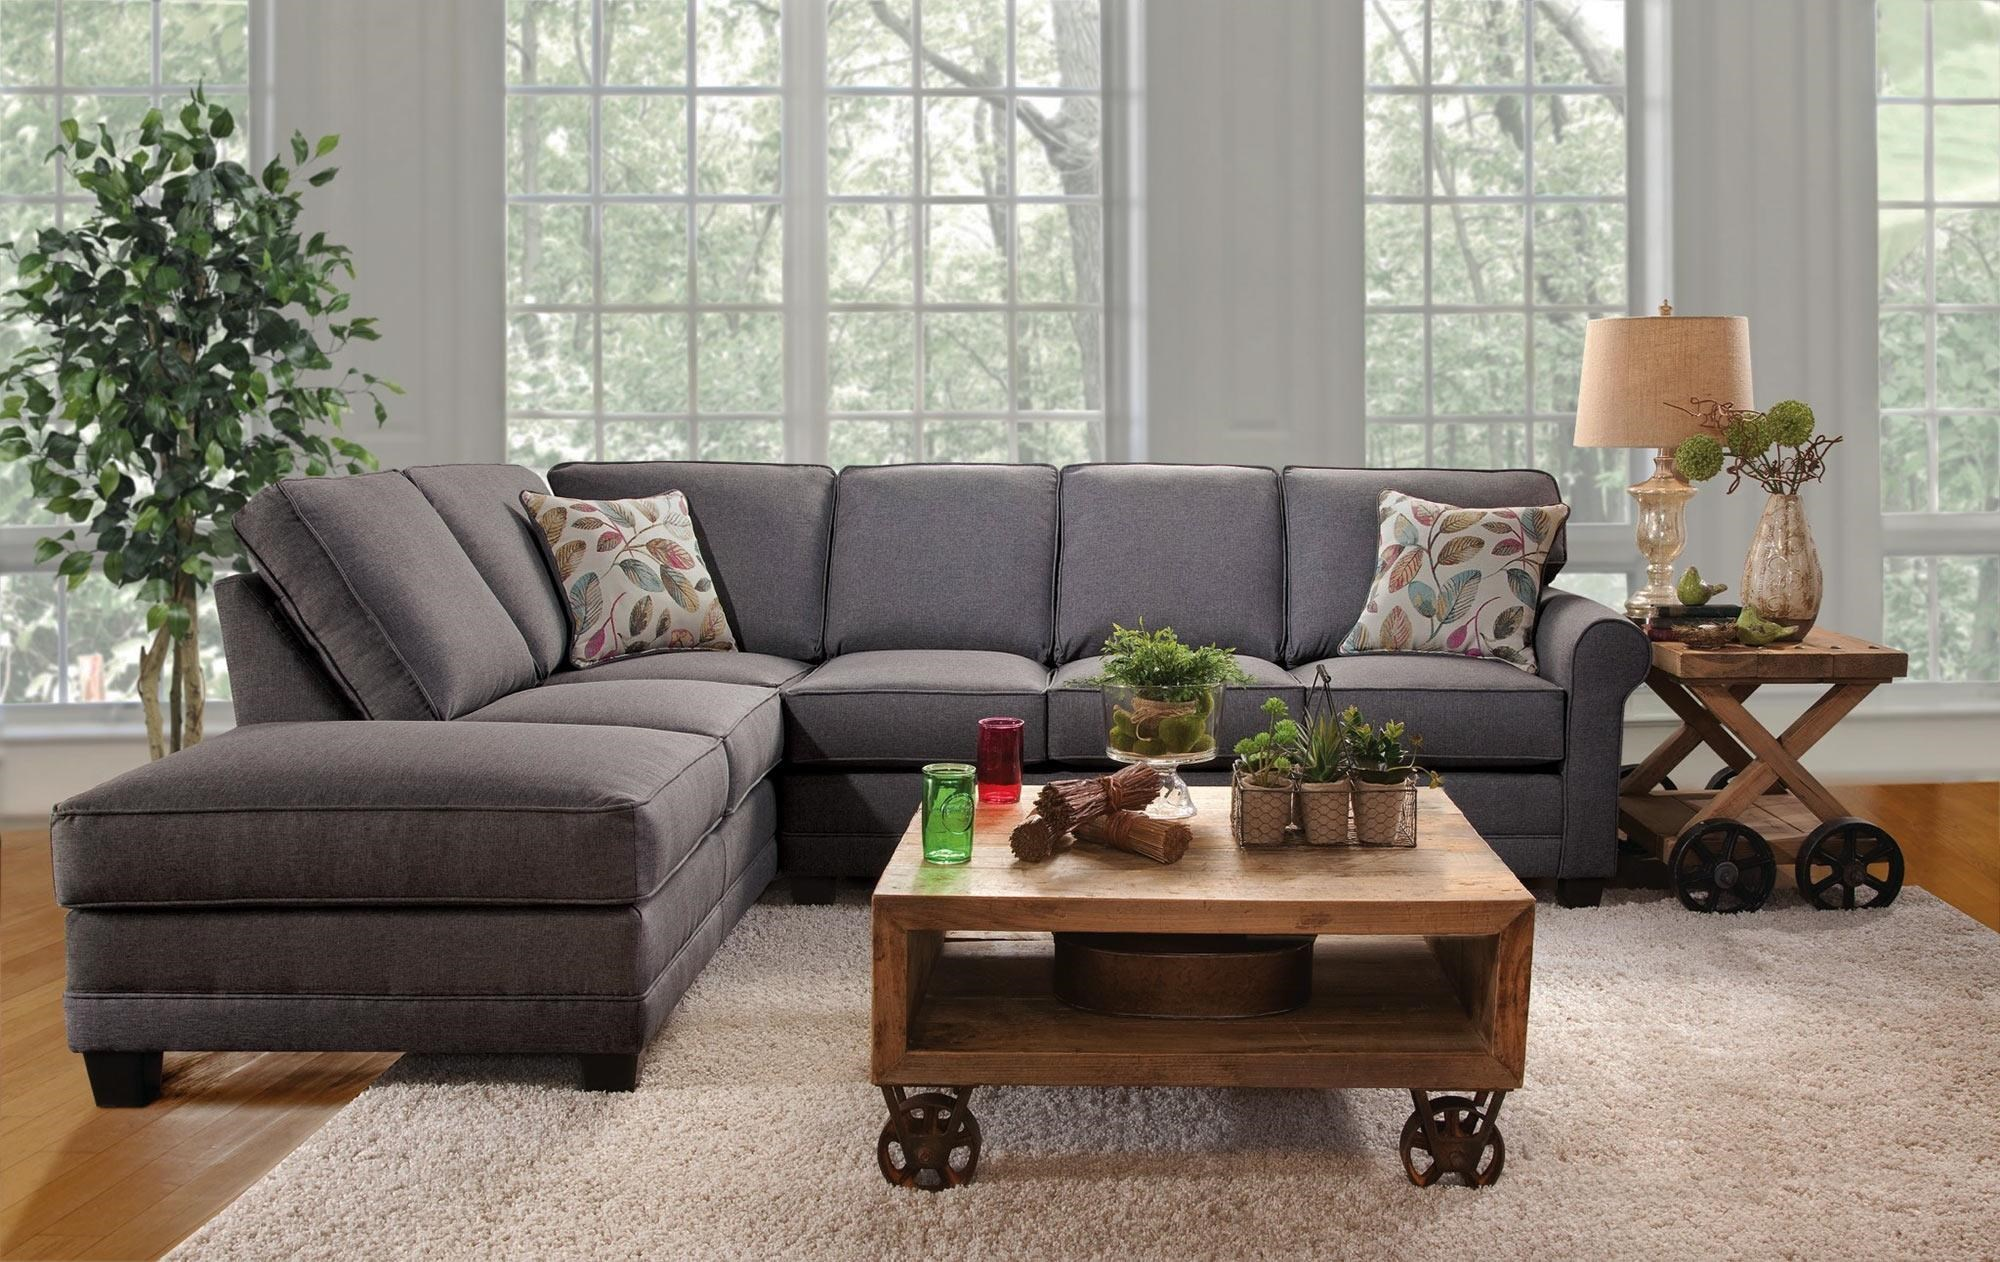 Serta Upholstery Jitterbug 2PC Sectional w/ Chaise  sc 1 st  Rotmans : serta upholstery sectional - Sectionals, Sofas & Couches